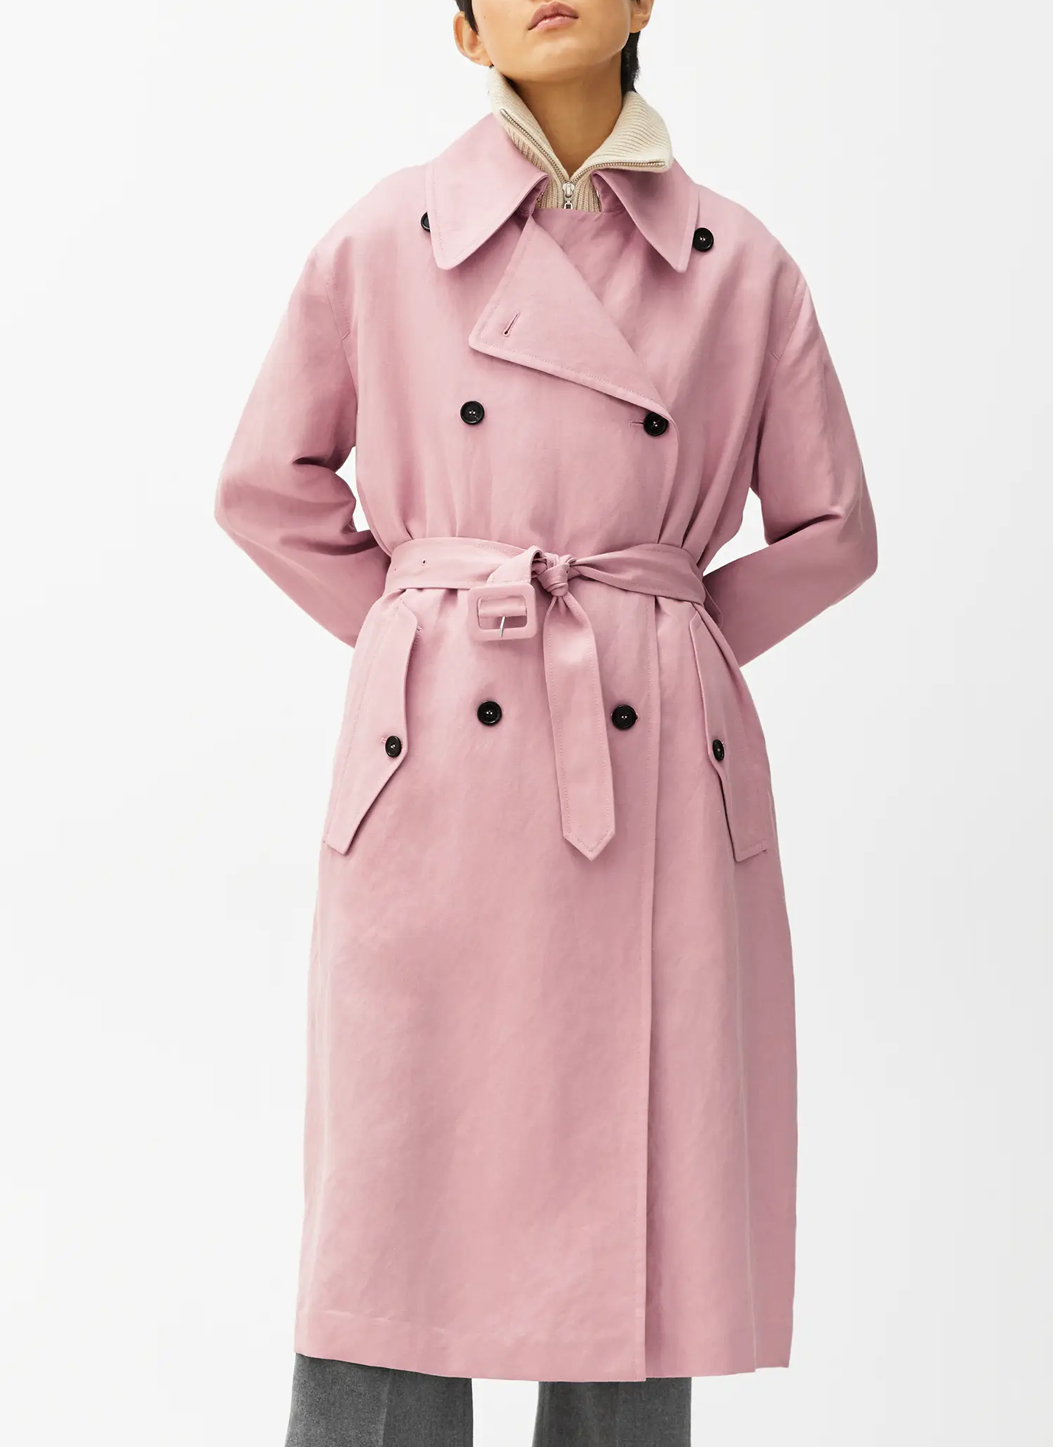 pink trench coat woman